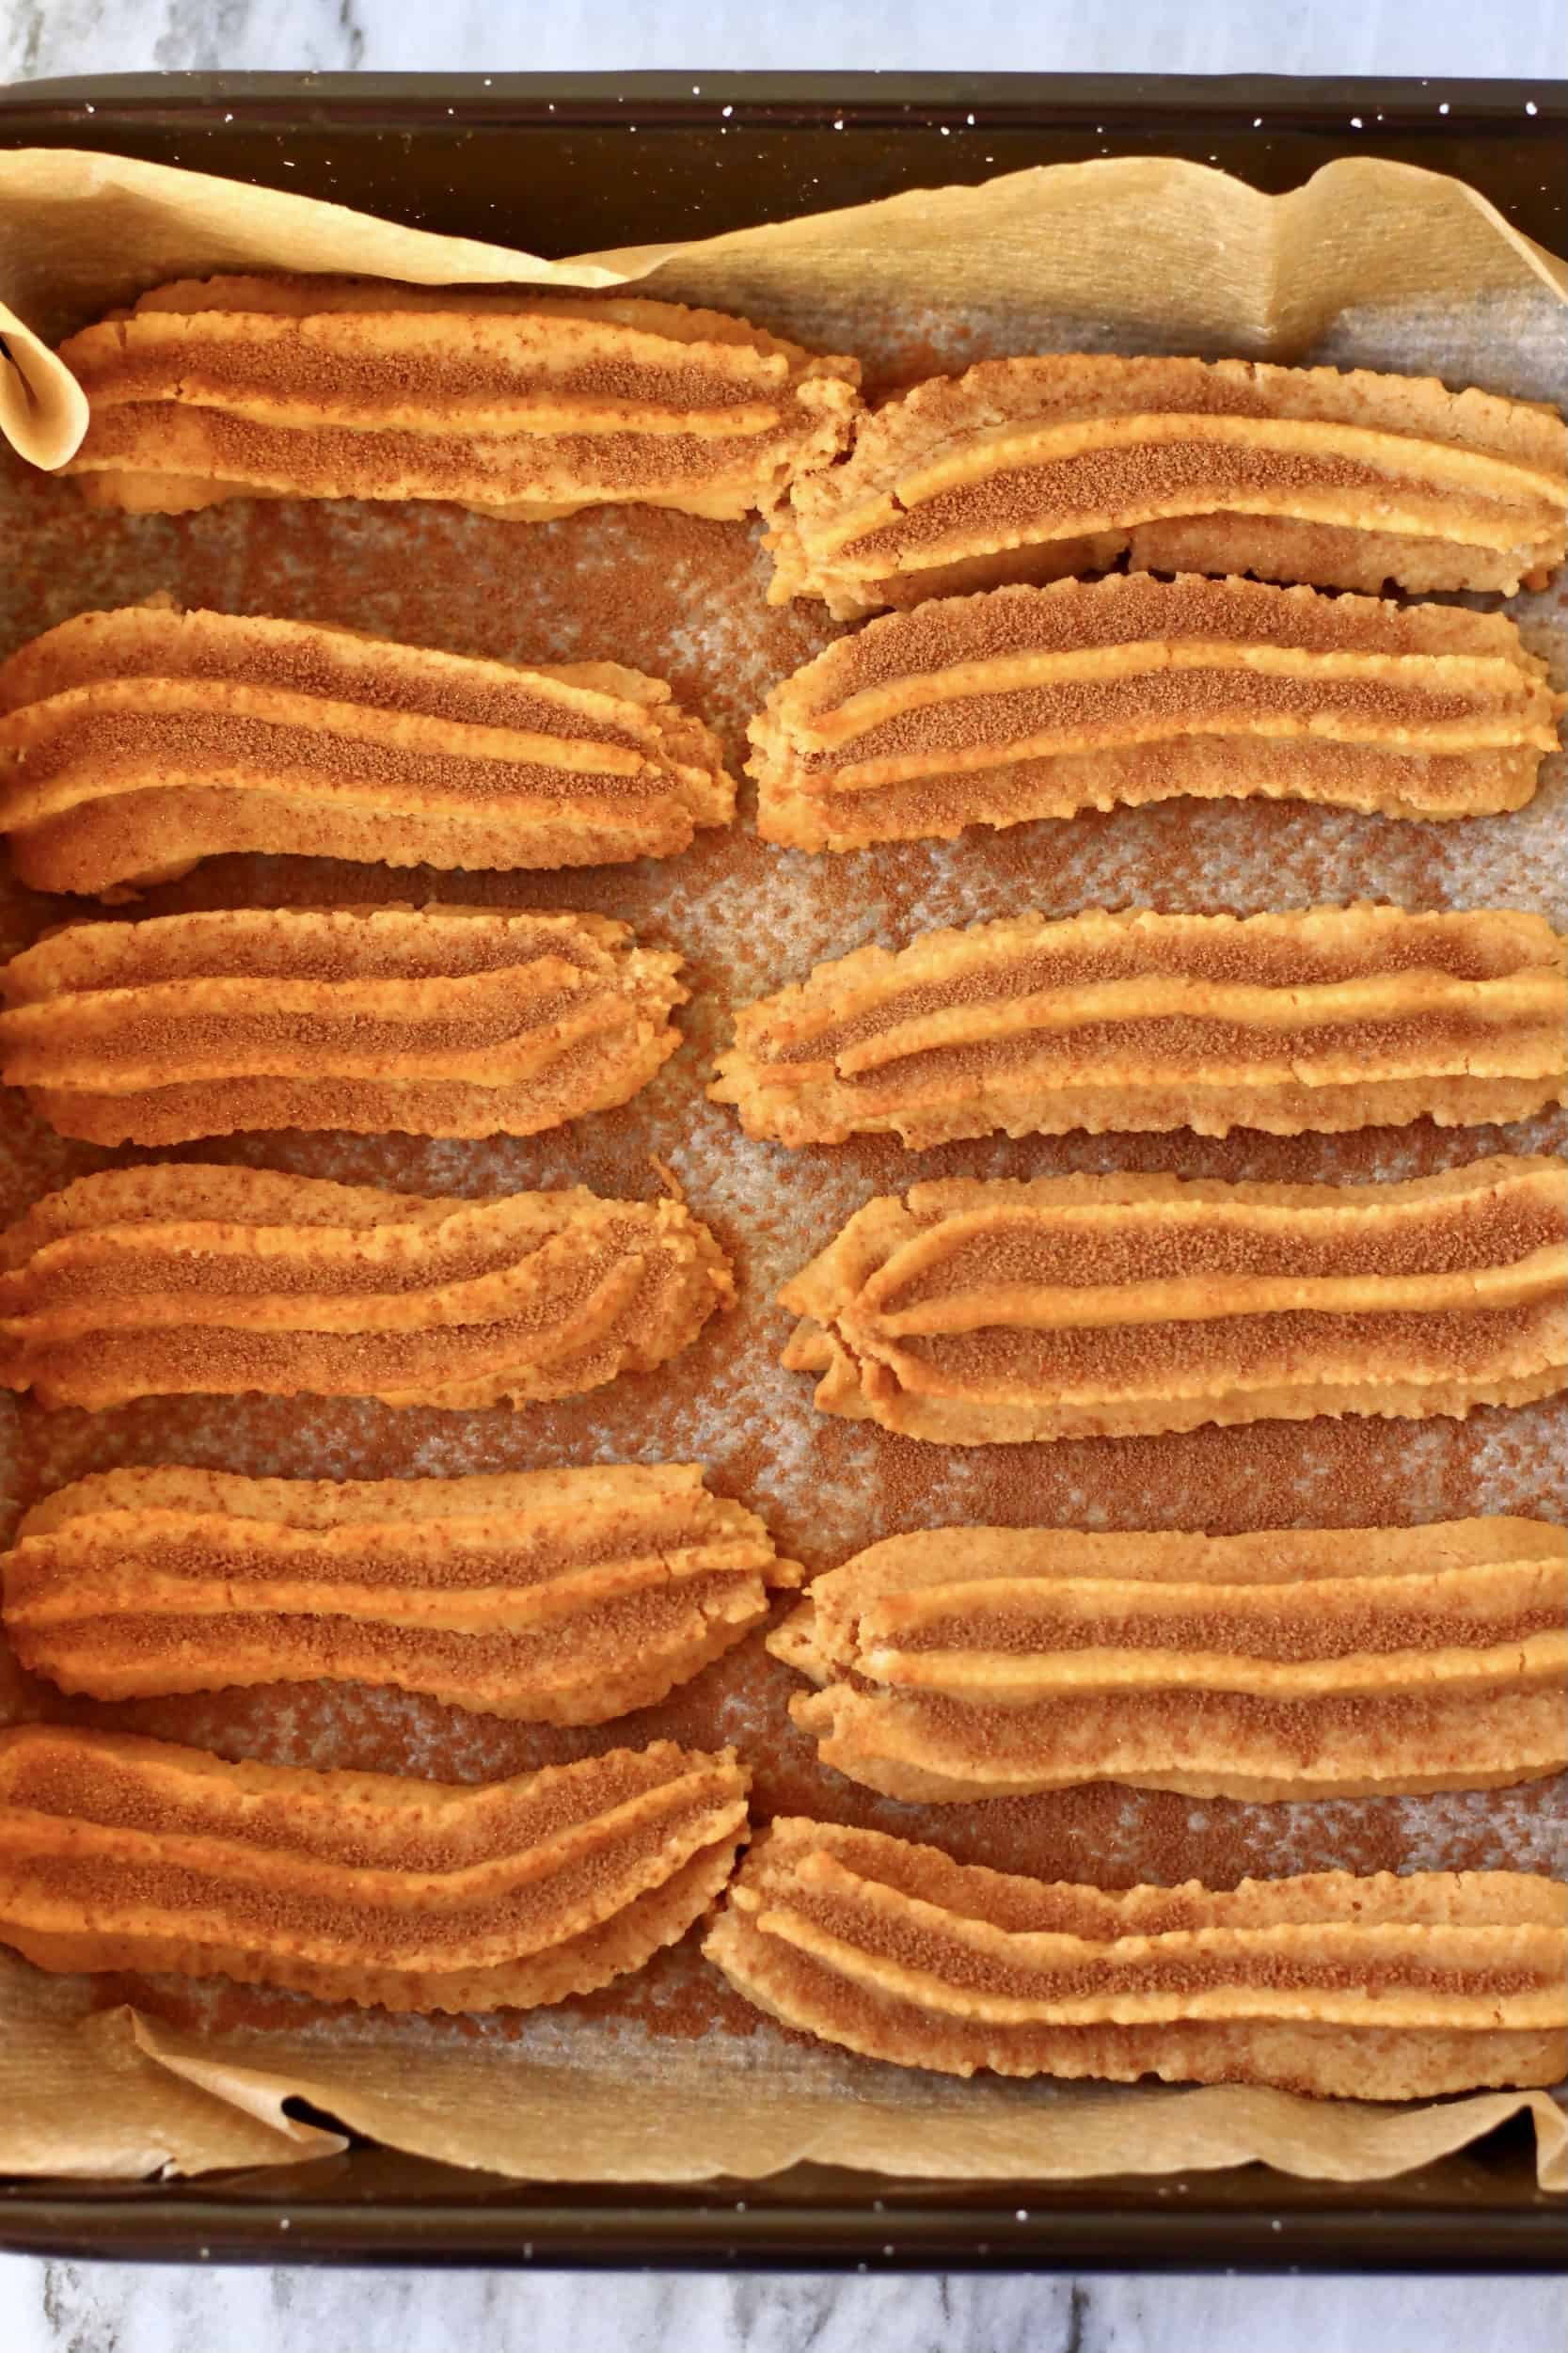 Twelve baked gluten-free vegan churros dusted with cinnamon sugar on a baking tray